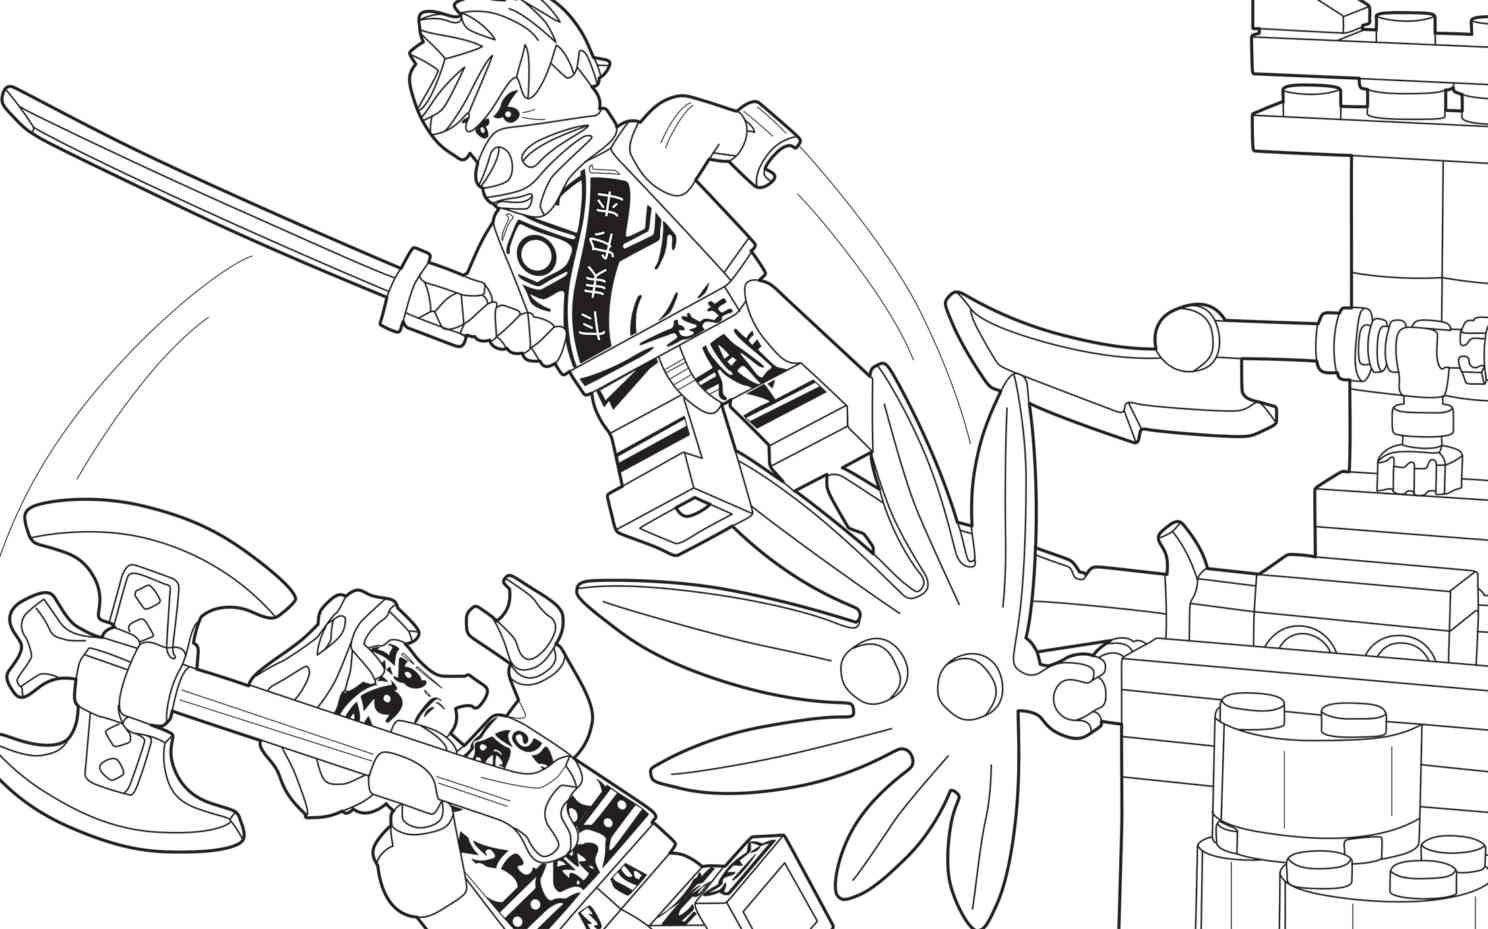 lego ninjago 70752 coloring sheet. | lego® coloring sheets